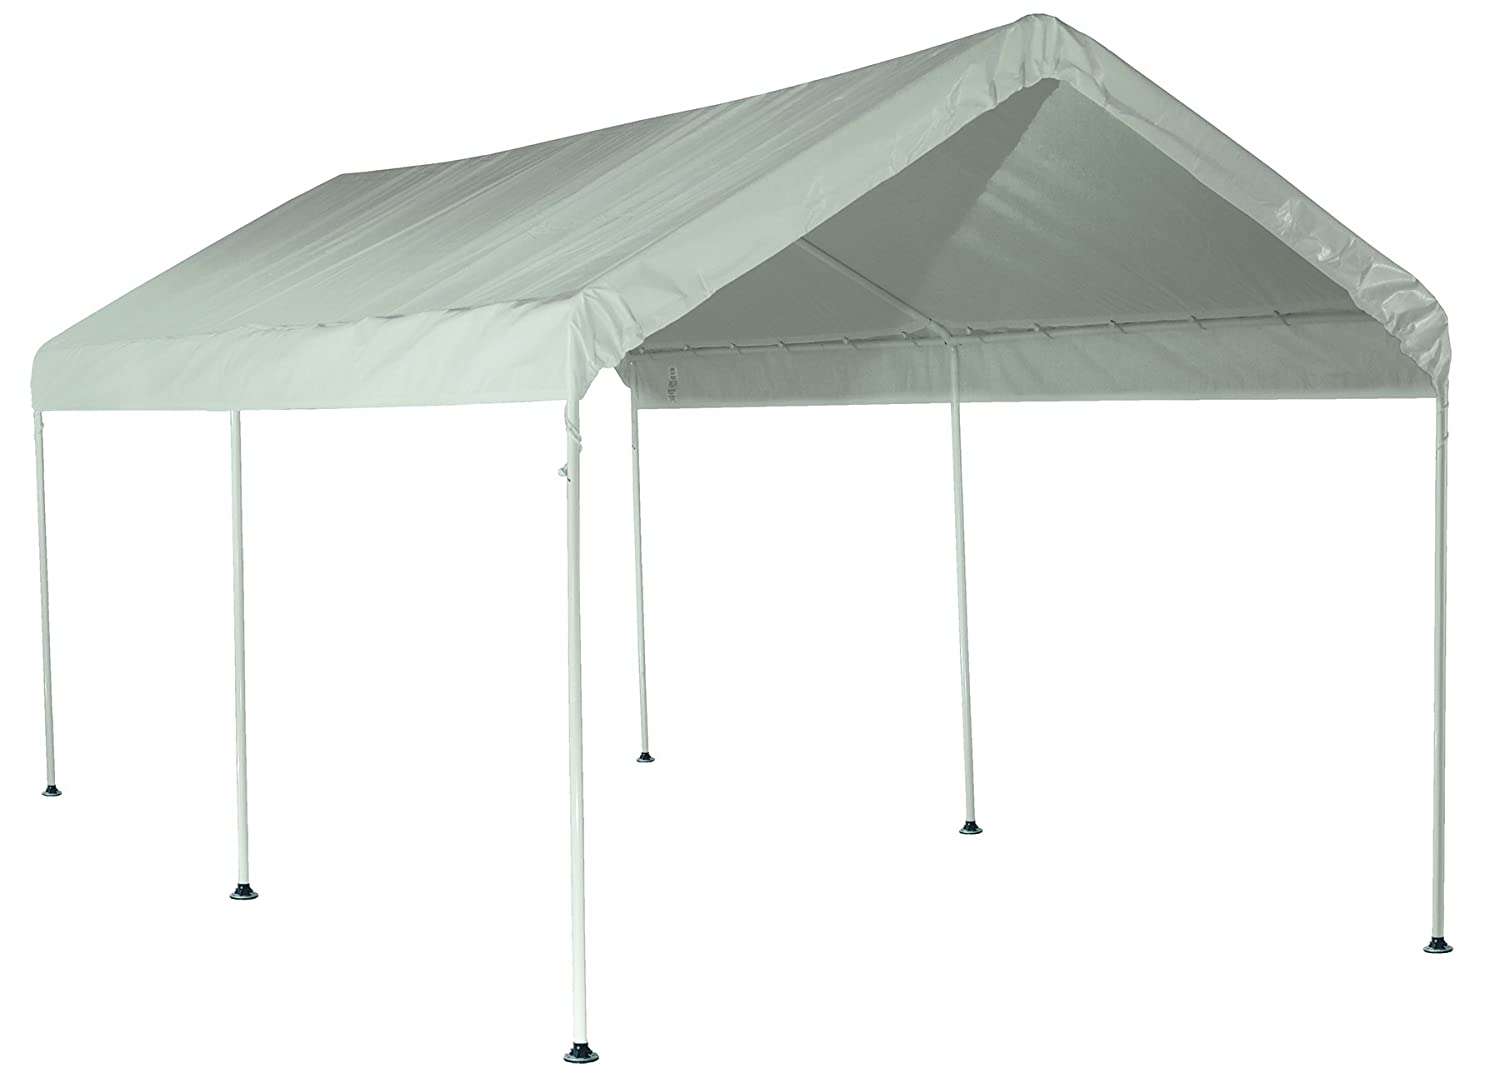 Amazon.com : ShelterLogic MaxAP Canopy, 10 x 20-ft, 6 Legs, White ...